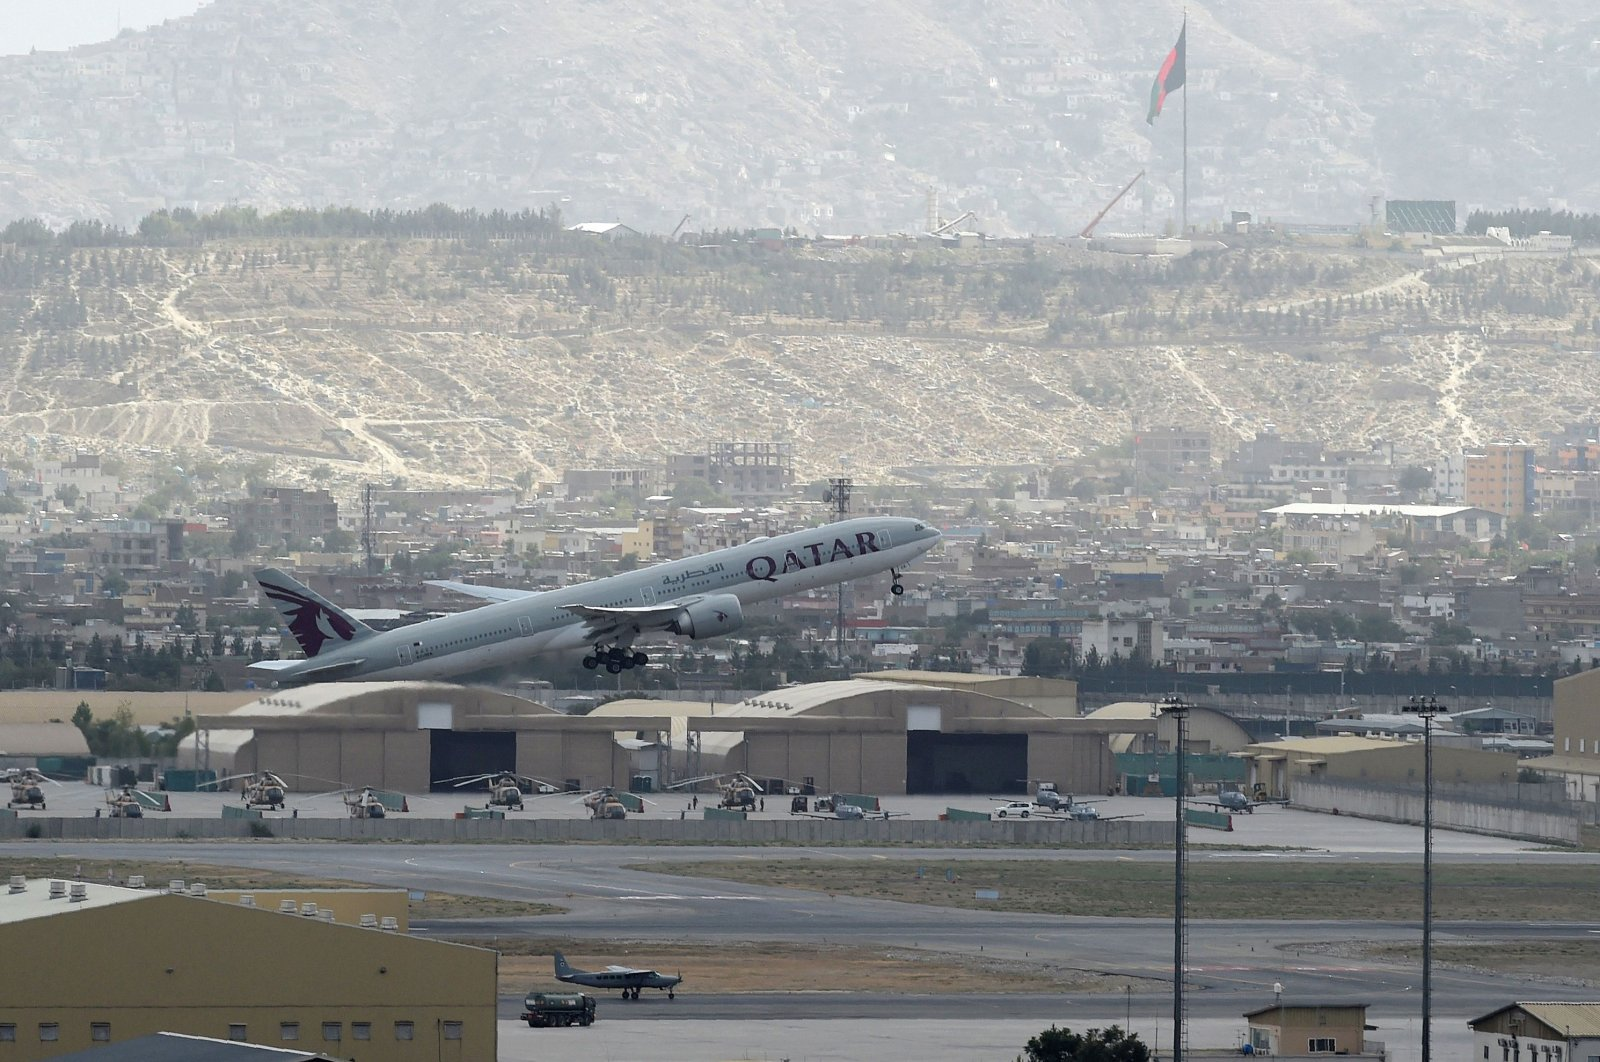 A Qatar Airways aircraft taking off from the airport in Kabul, Aug. 14, 2021. (AFP Photo)